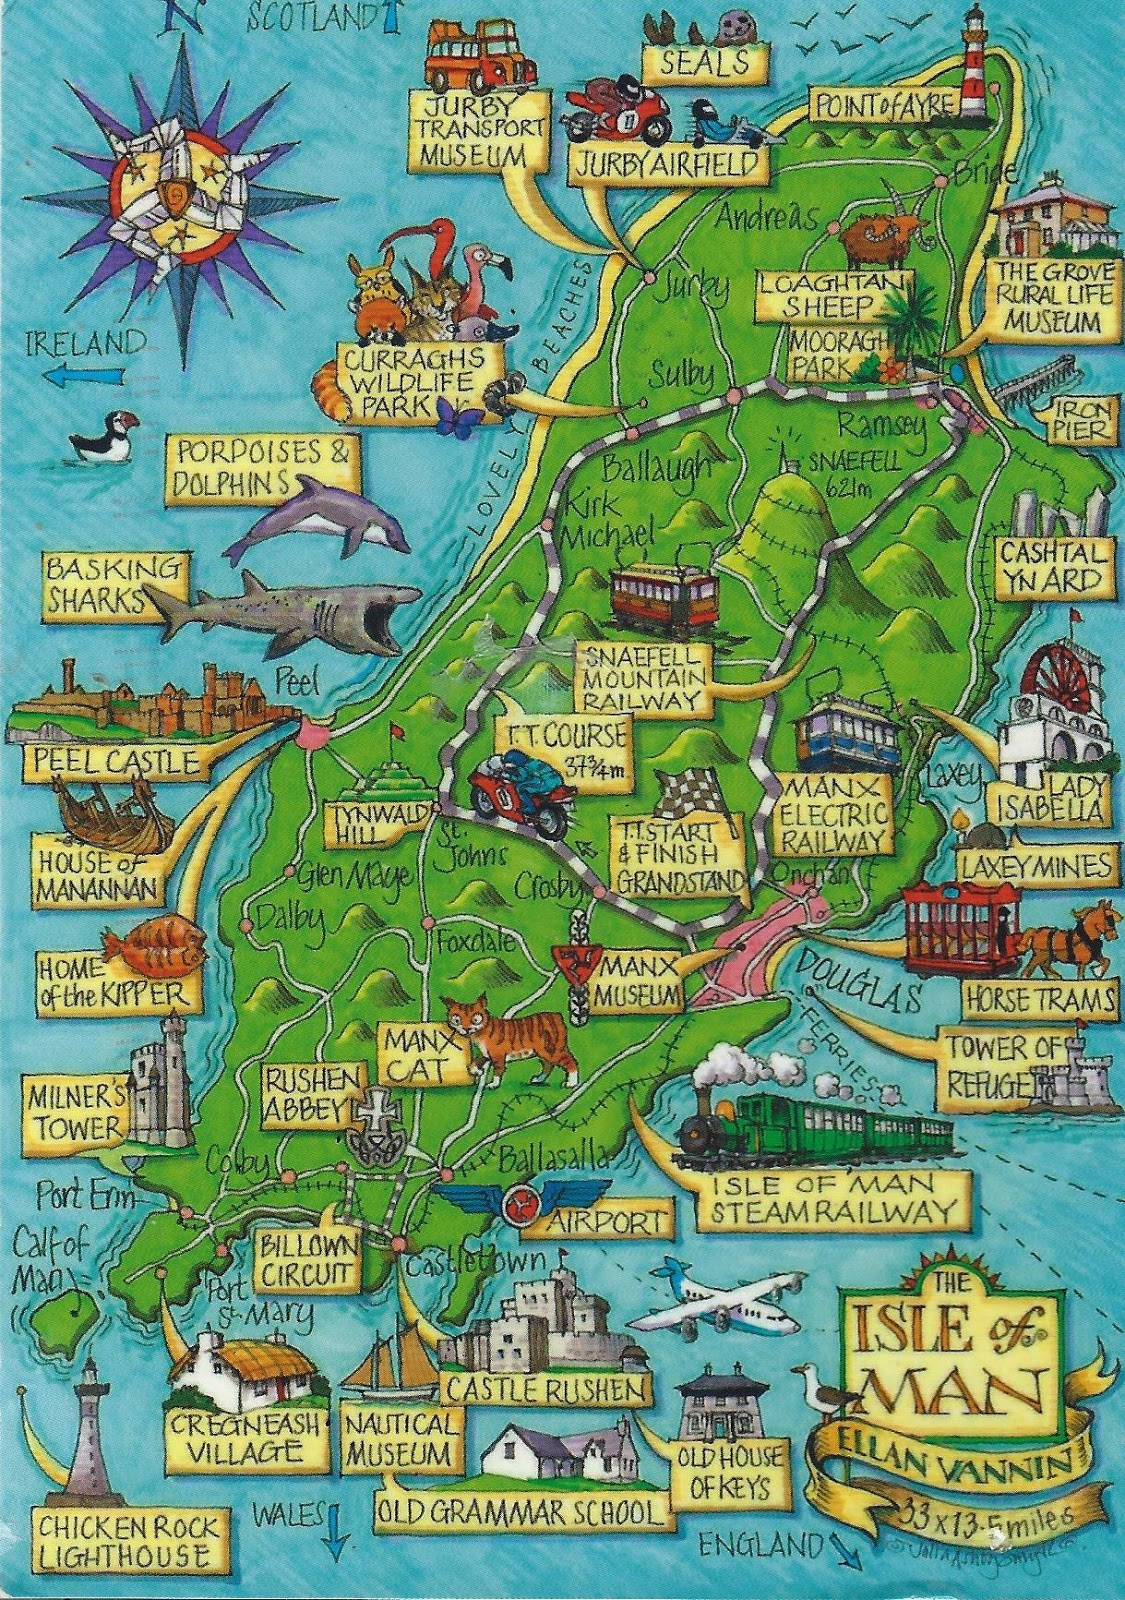 A Journey Of Postcards: Map Of The Isle Of Man